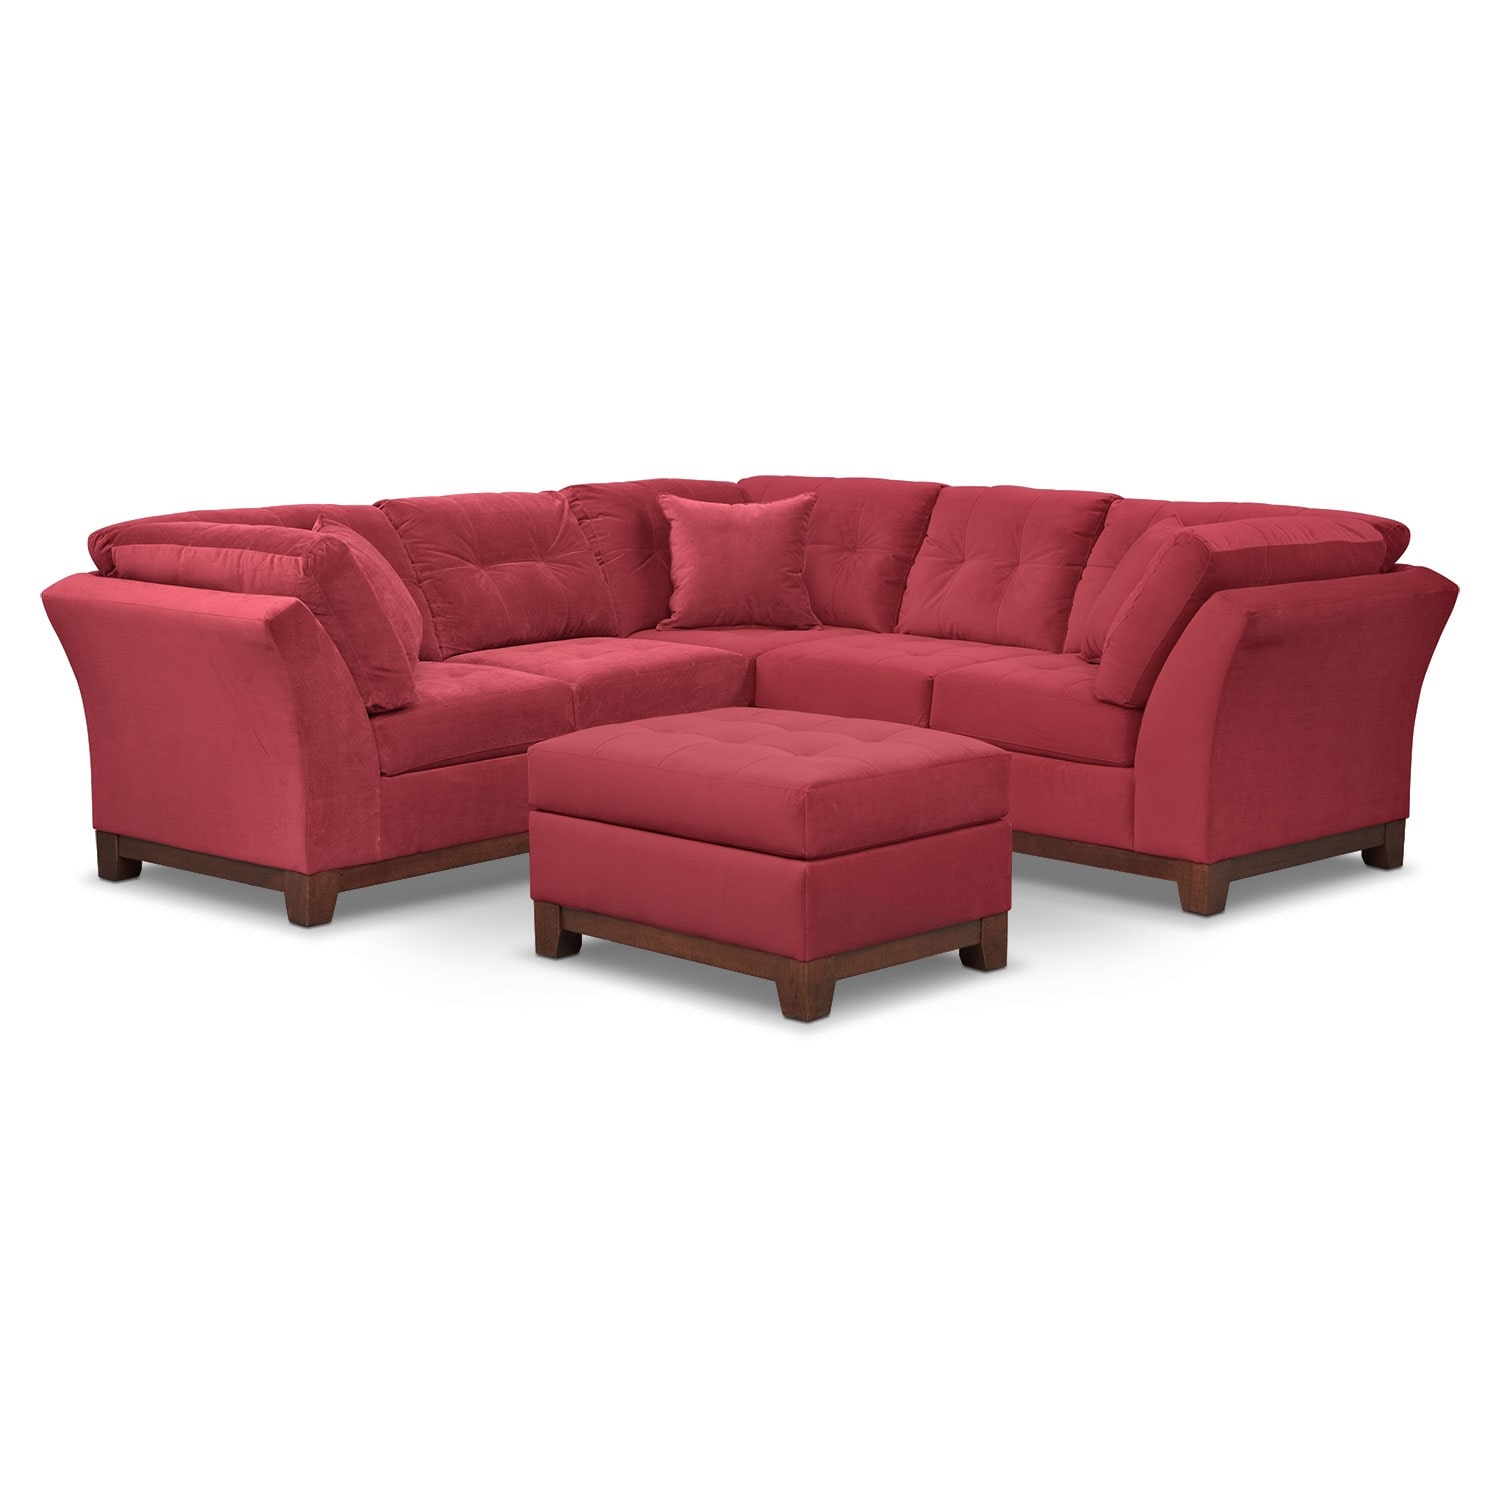 Living Room Furniture - Solace Poppy II 2 Pc. Sectional (Alternate II) and Ottoman